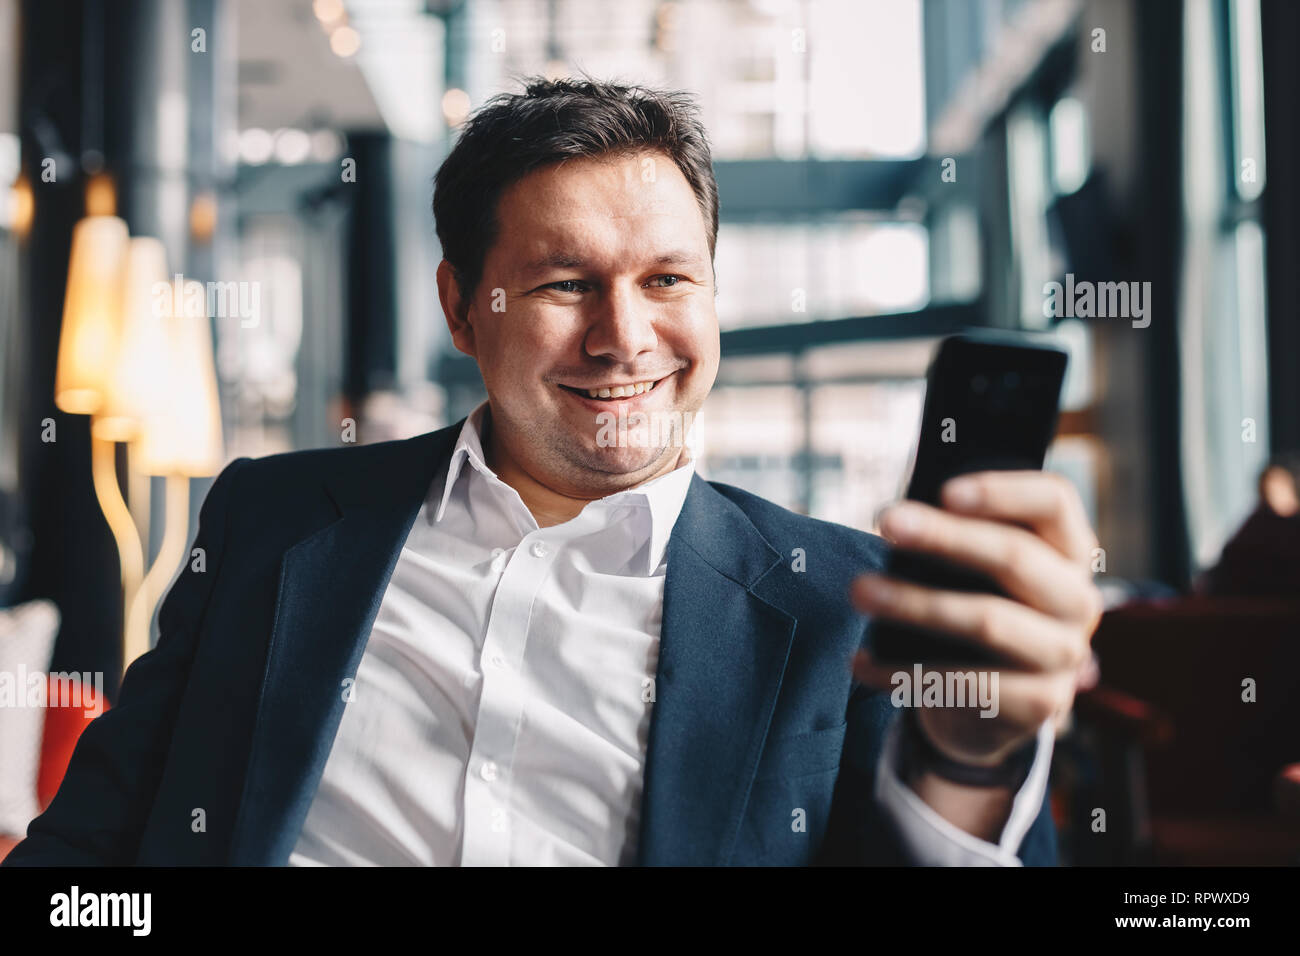 Close-up of attractive young businessman taking a selfie while sitting in a cafe bar during a break from work, smiling and looking at the camera on hi - Stock Image